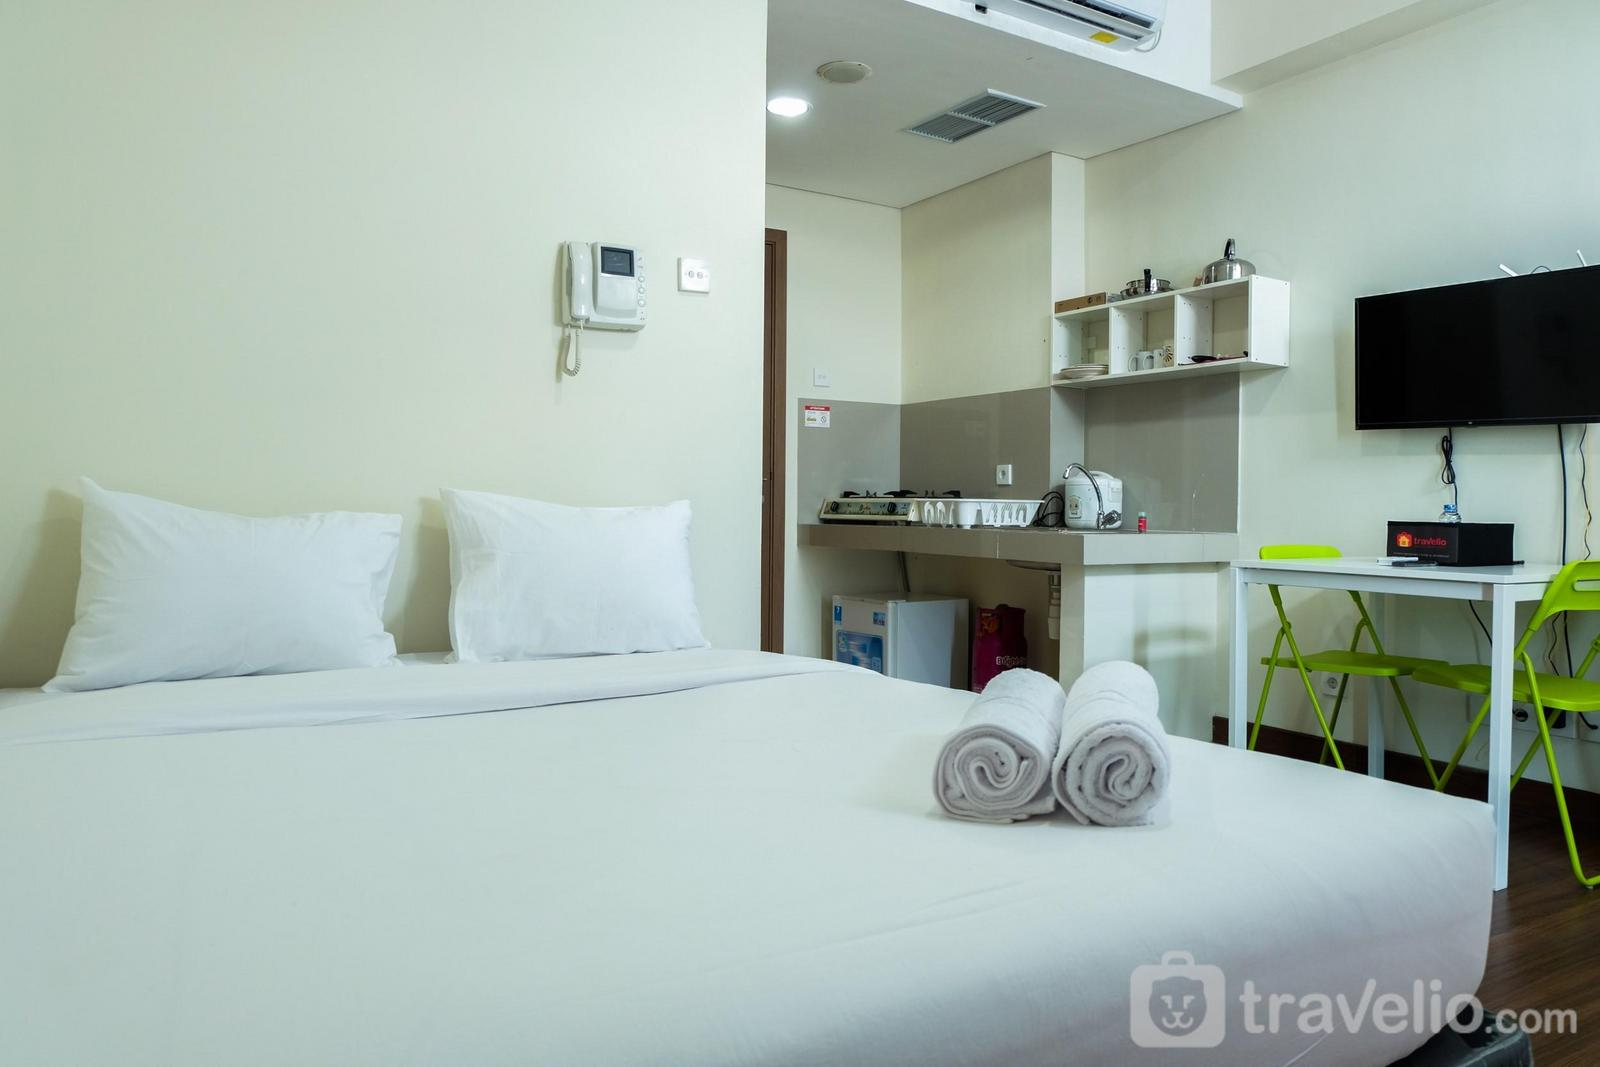 Puri Orchard Apartment - Relax Studio Apartment at Puri Orchard By Travelio